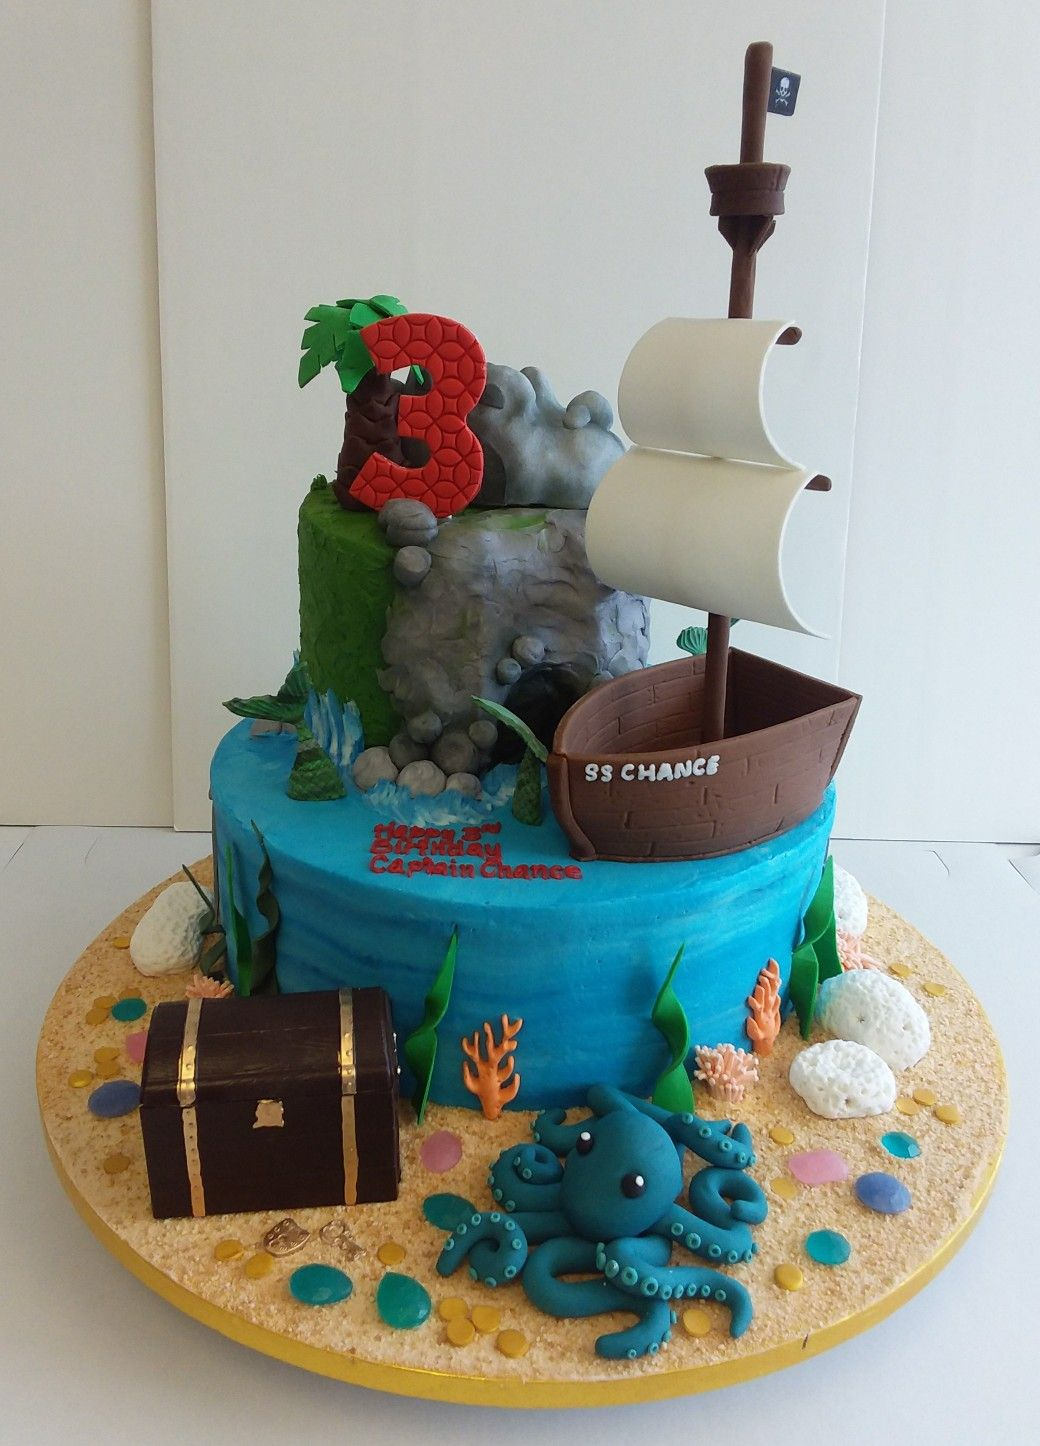 Magnificent Pirate Themed Cake With Ship Mermaids Treasure Chest And Cove Birthday Cards Printable Inklcafe Filternl